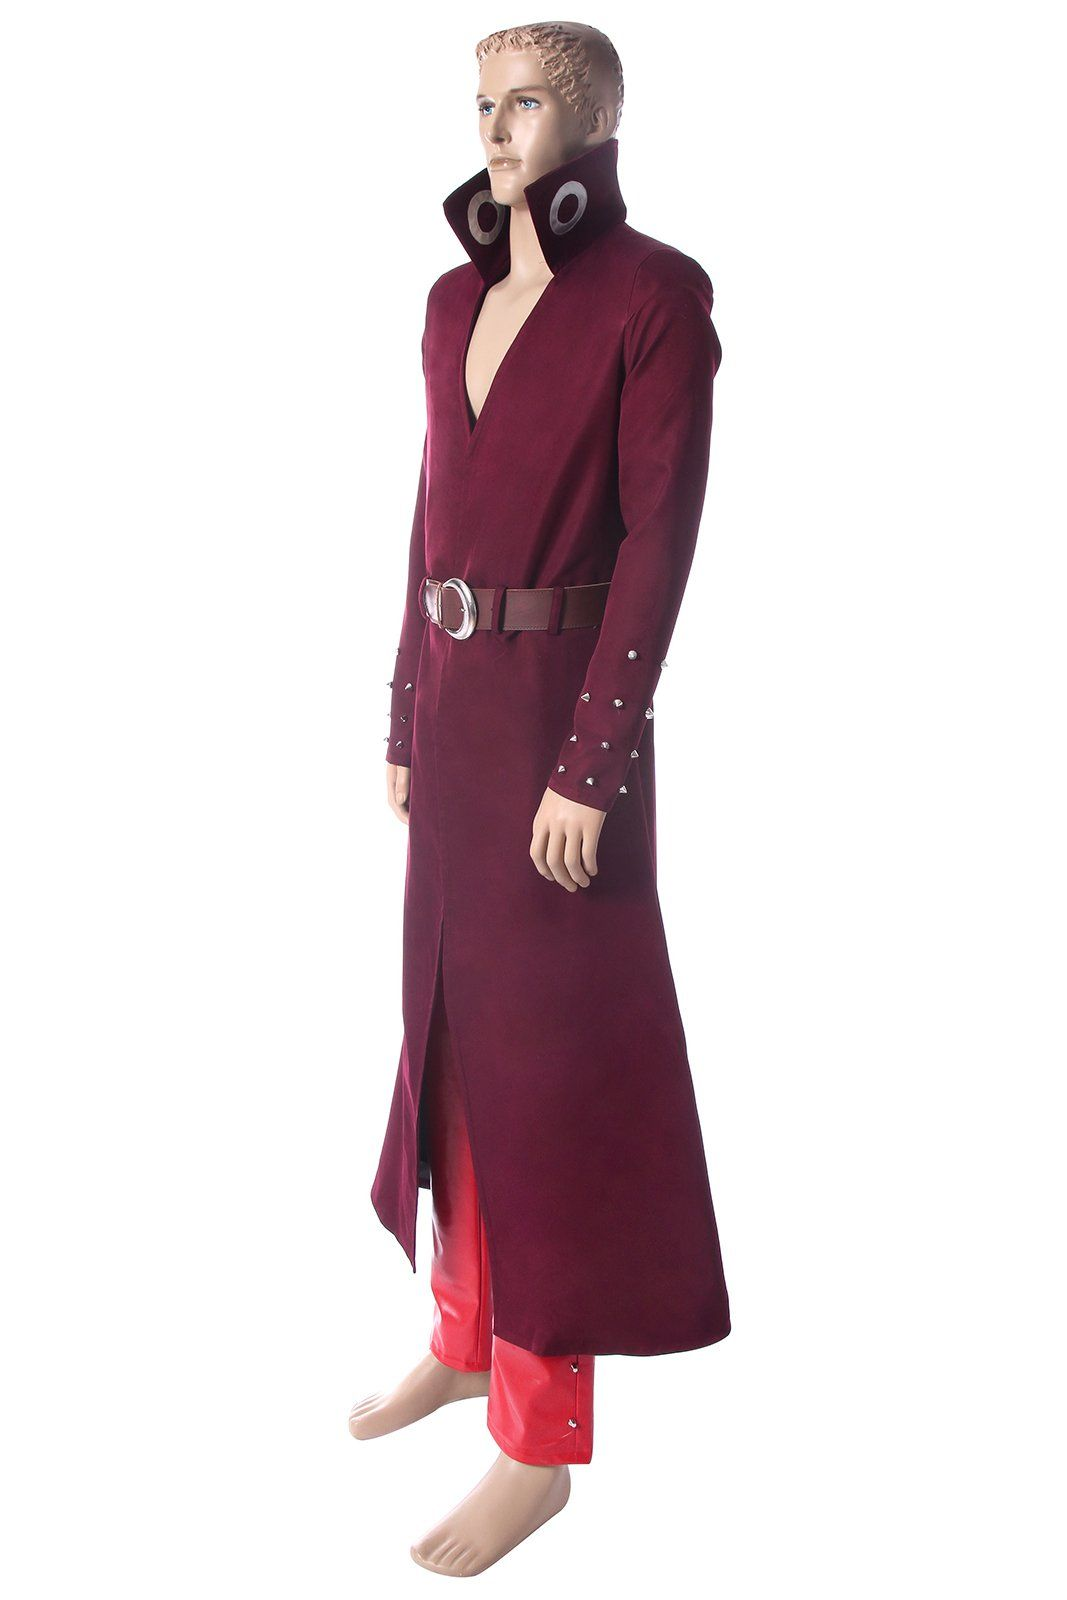 Ban/'s cloak coat from the anime \u0422he seven deadly sins